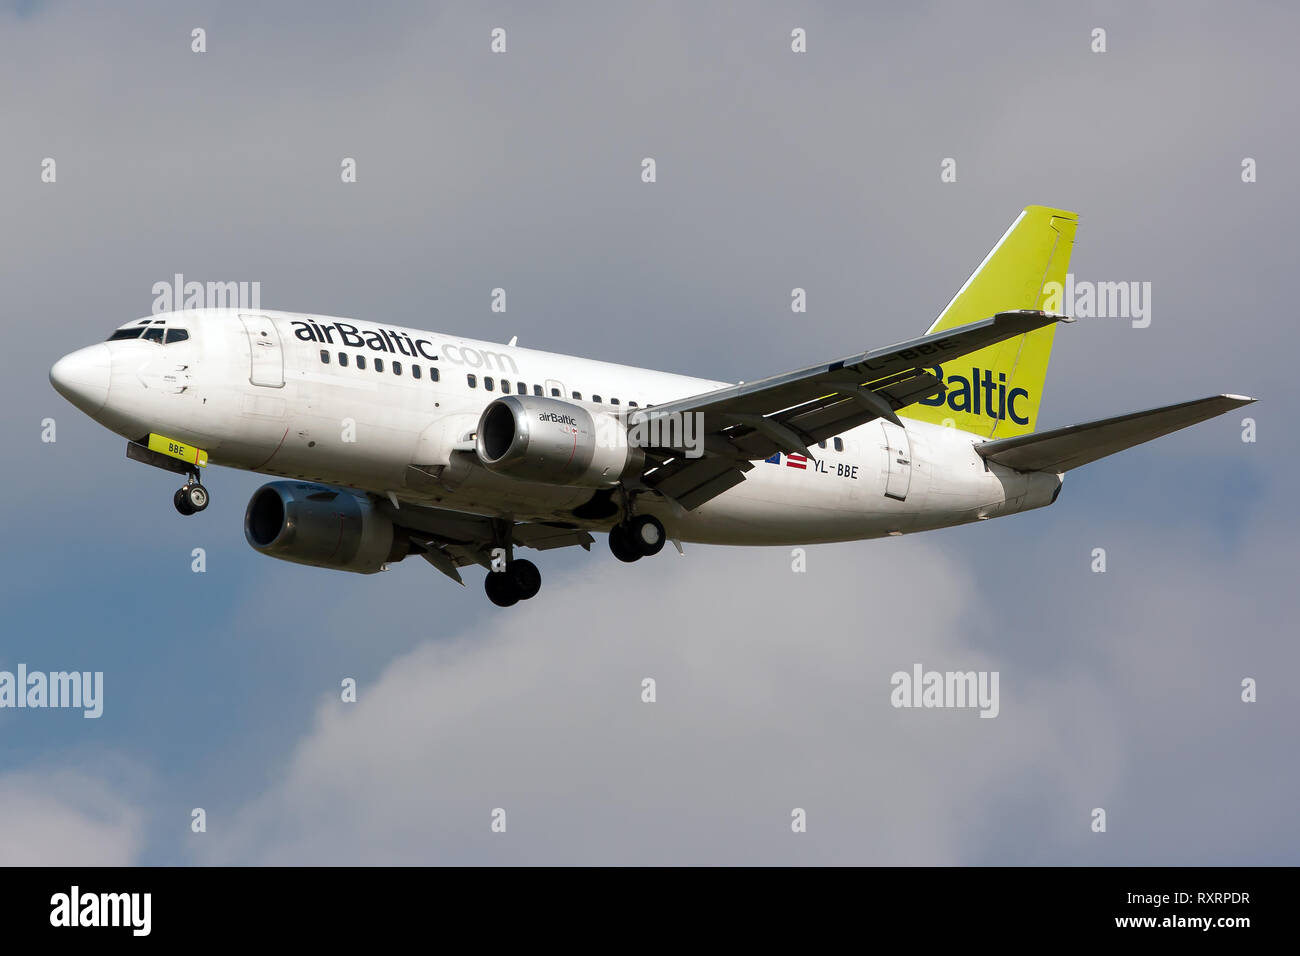 Rome, Italy. 24th Apr, 2014. An Air Baltic Boeing 737-500 seen landing at Rome Fiumicino airport. Credit: Fabrizio Gandolfo/SOPA Images/ZUMA Wire/Alamy Live News - Stock Image